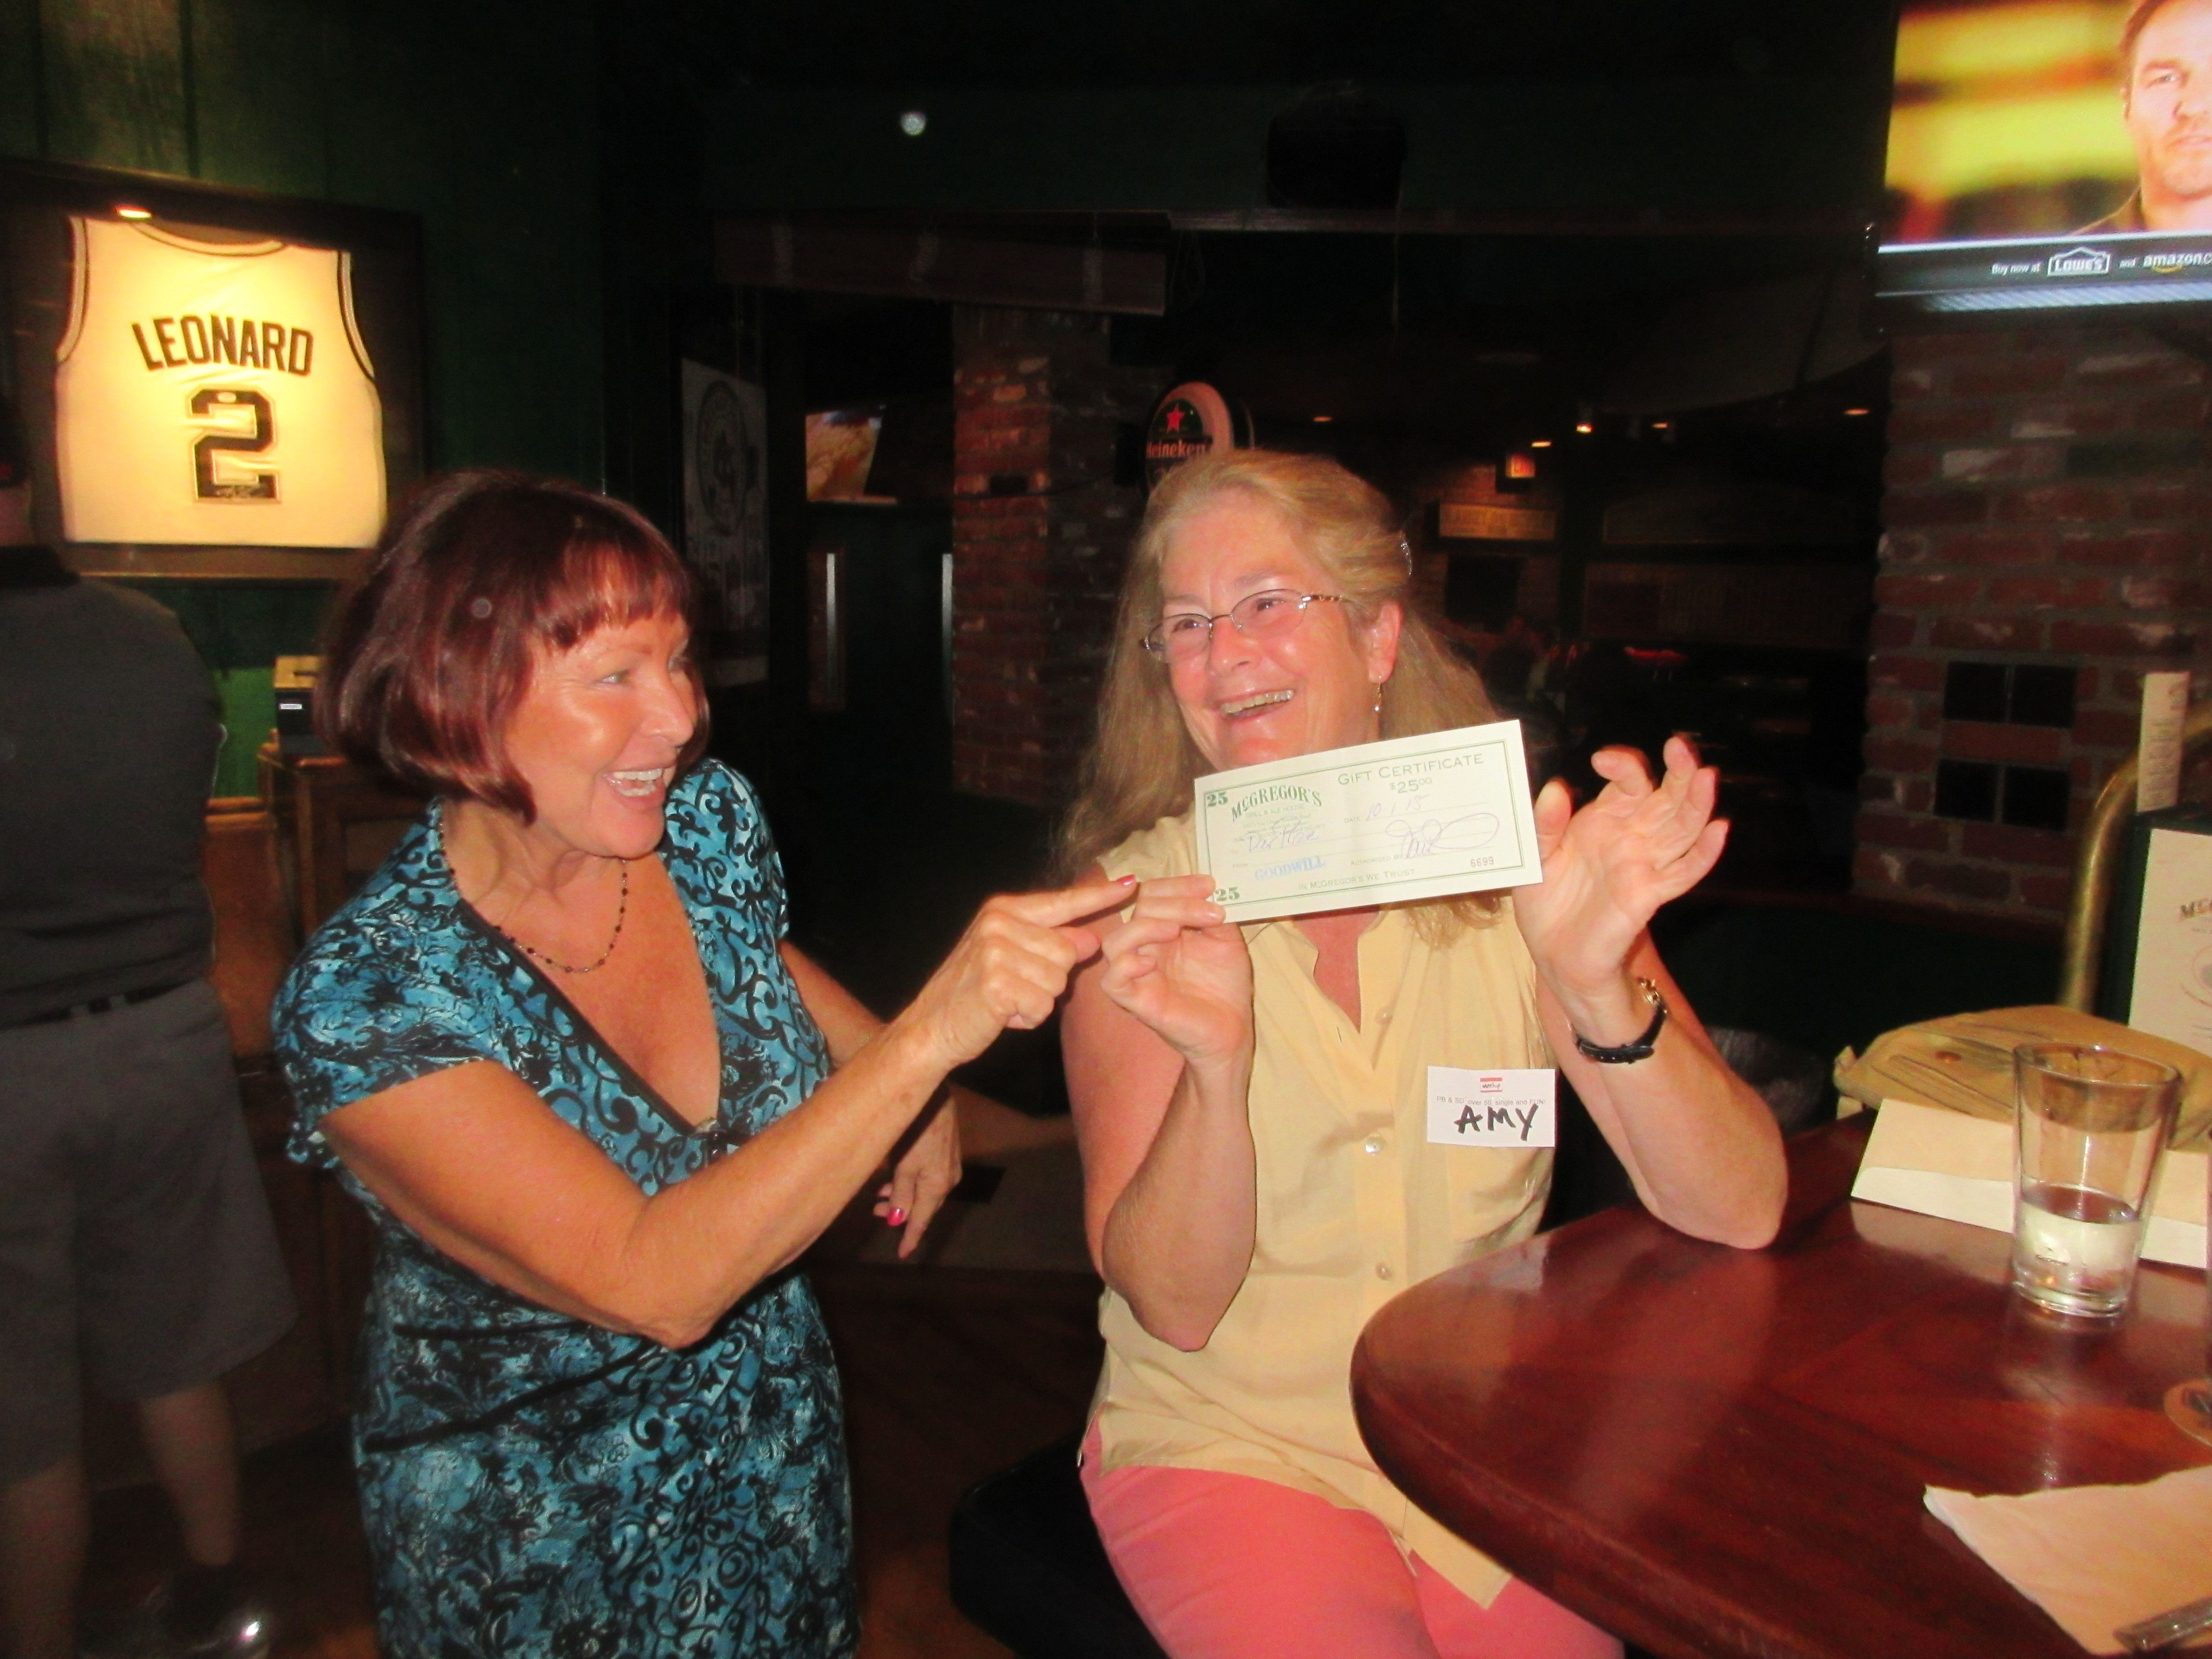 san marino singles over 50 Join mingle2's fun online community of san clemente senior singles went to high school in tokyo and then moved to san a winemaker who moved us all over.